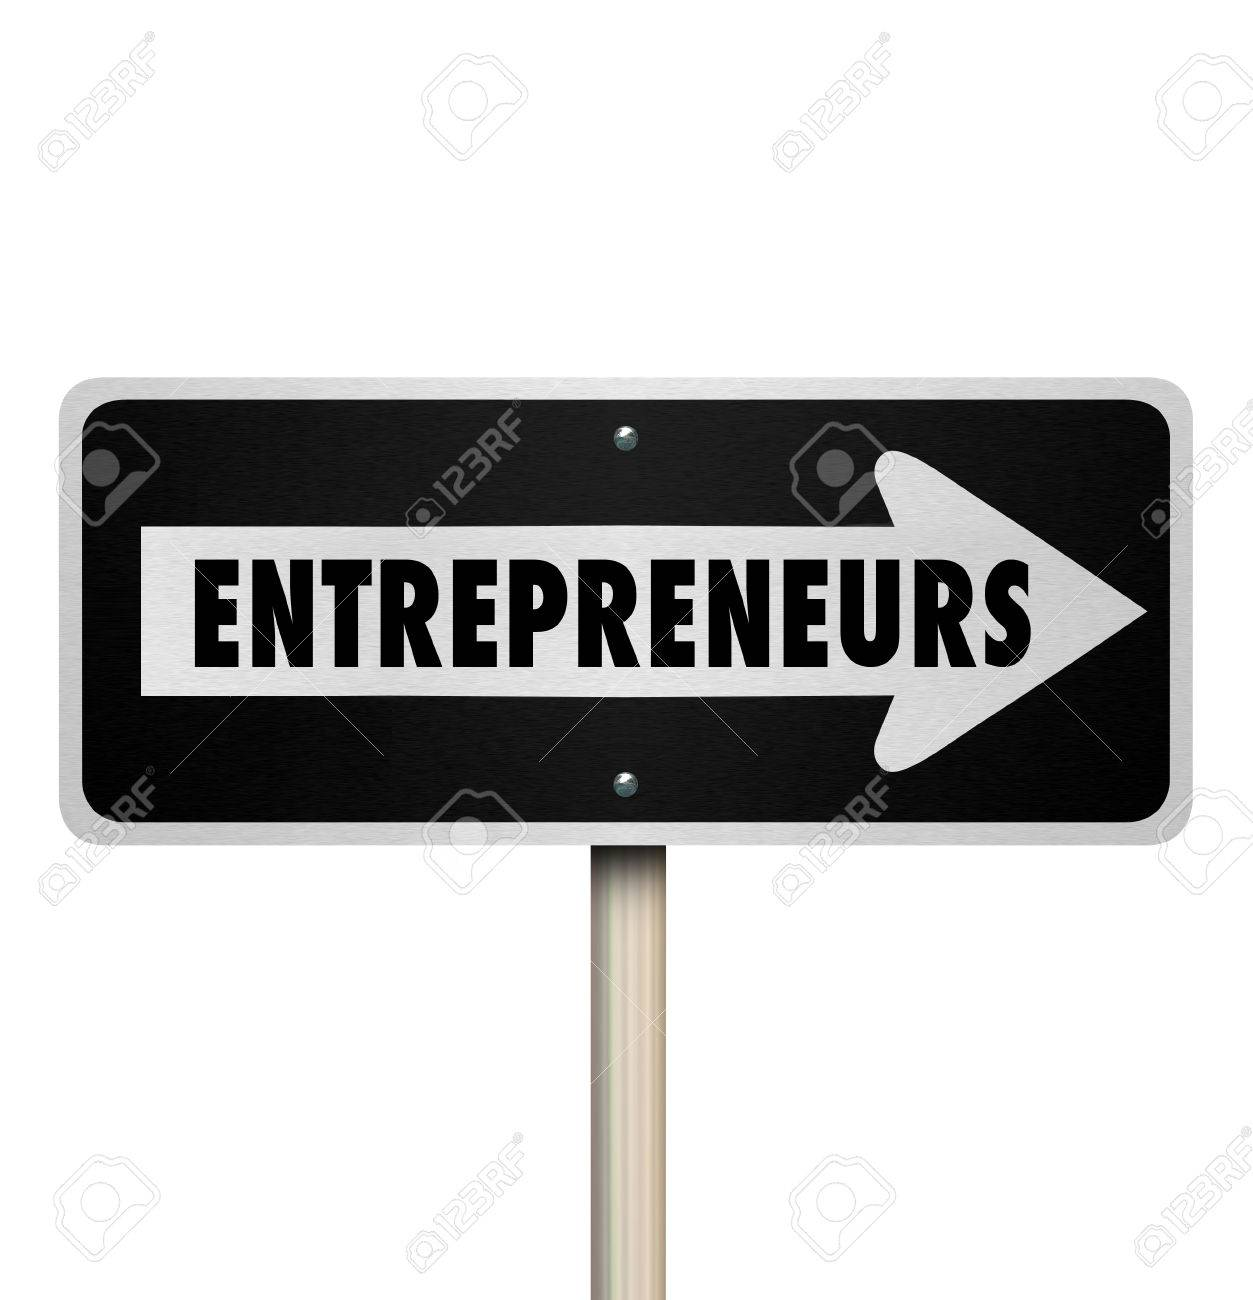 entrepreneurs word on a one way road or street sign pointing entrepreneurs word on a one way road or street sign pointing you to new business